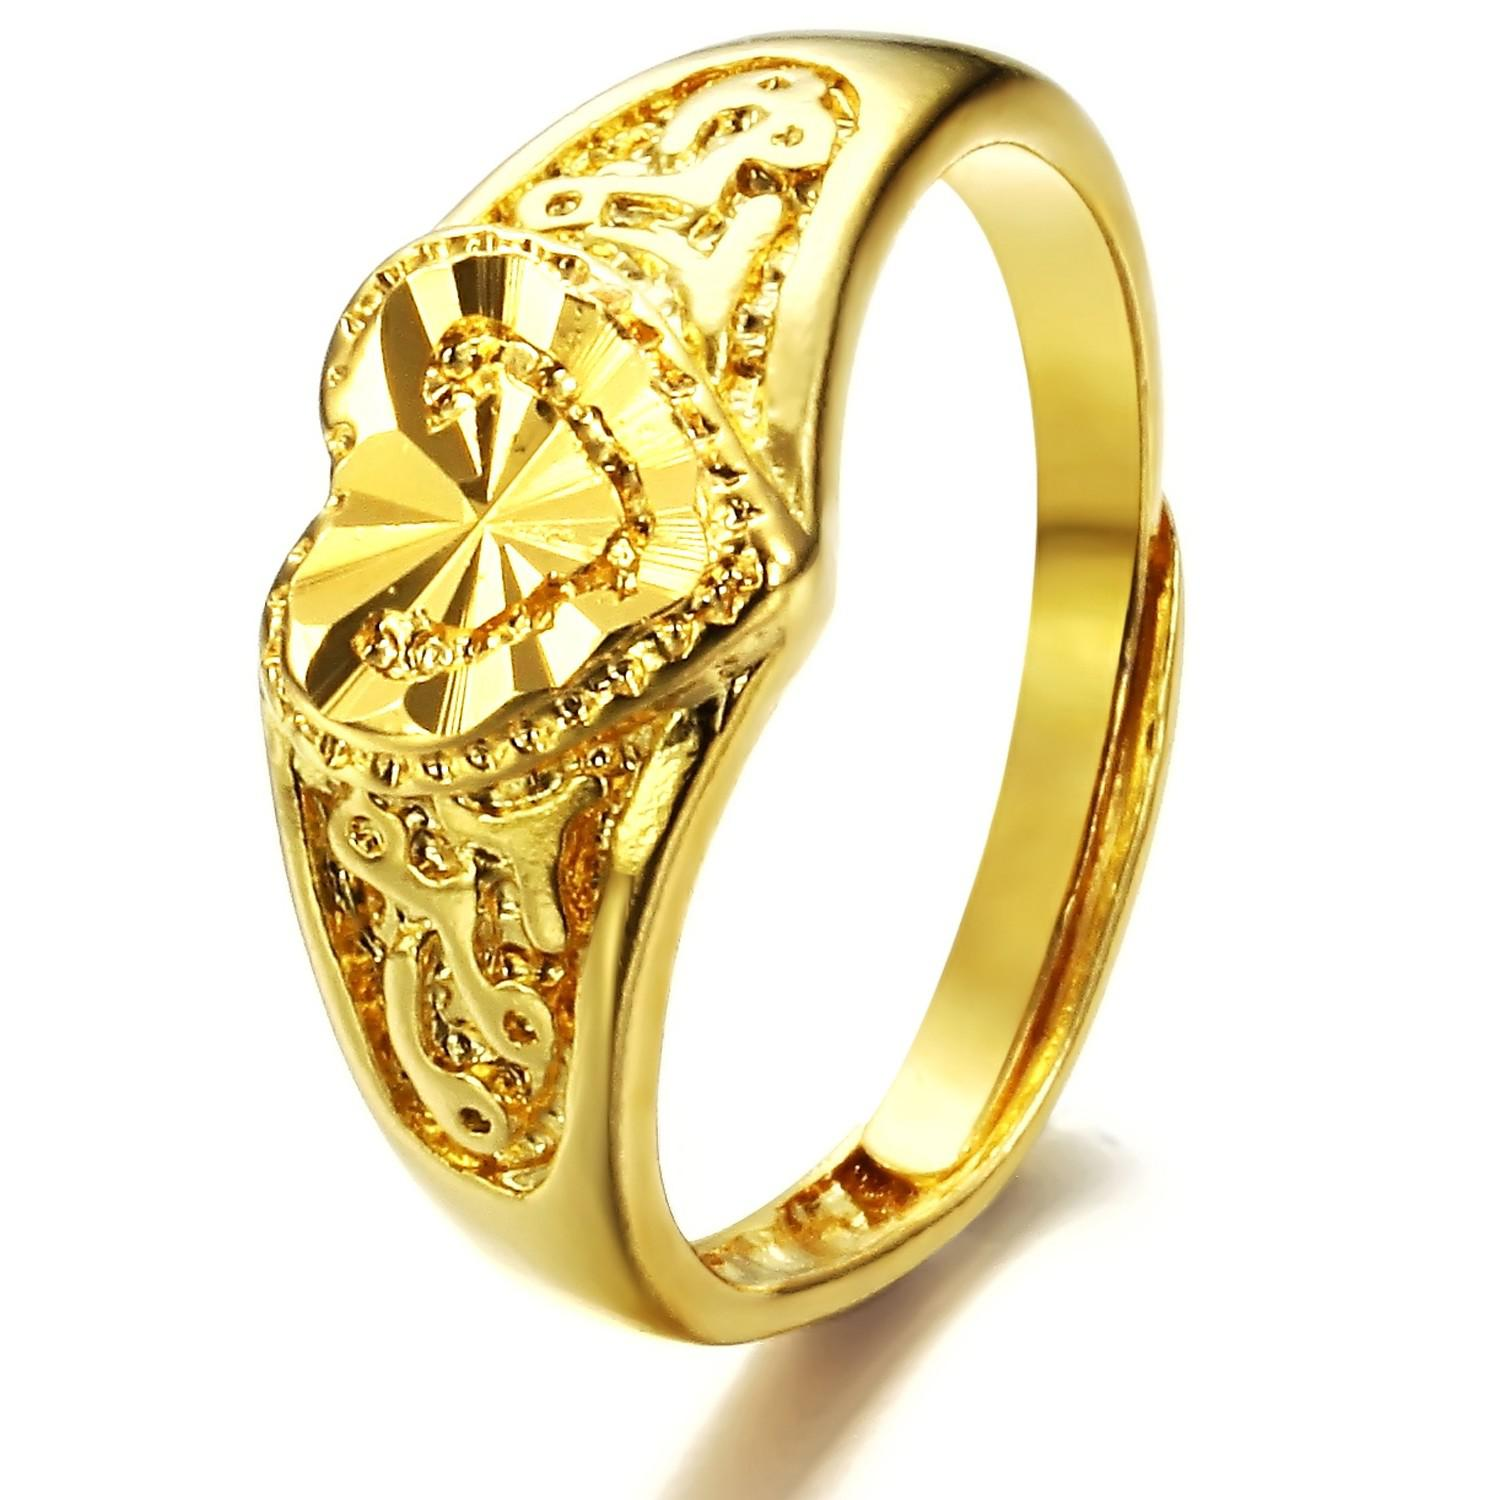 hot sale plating 18k yellow gold rings adjustable wedding ring jewelry 10pcslot kj001 - Wedding Rings For Sale